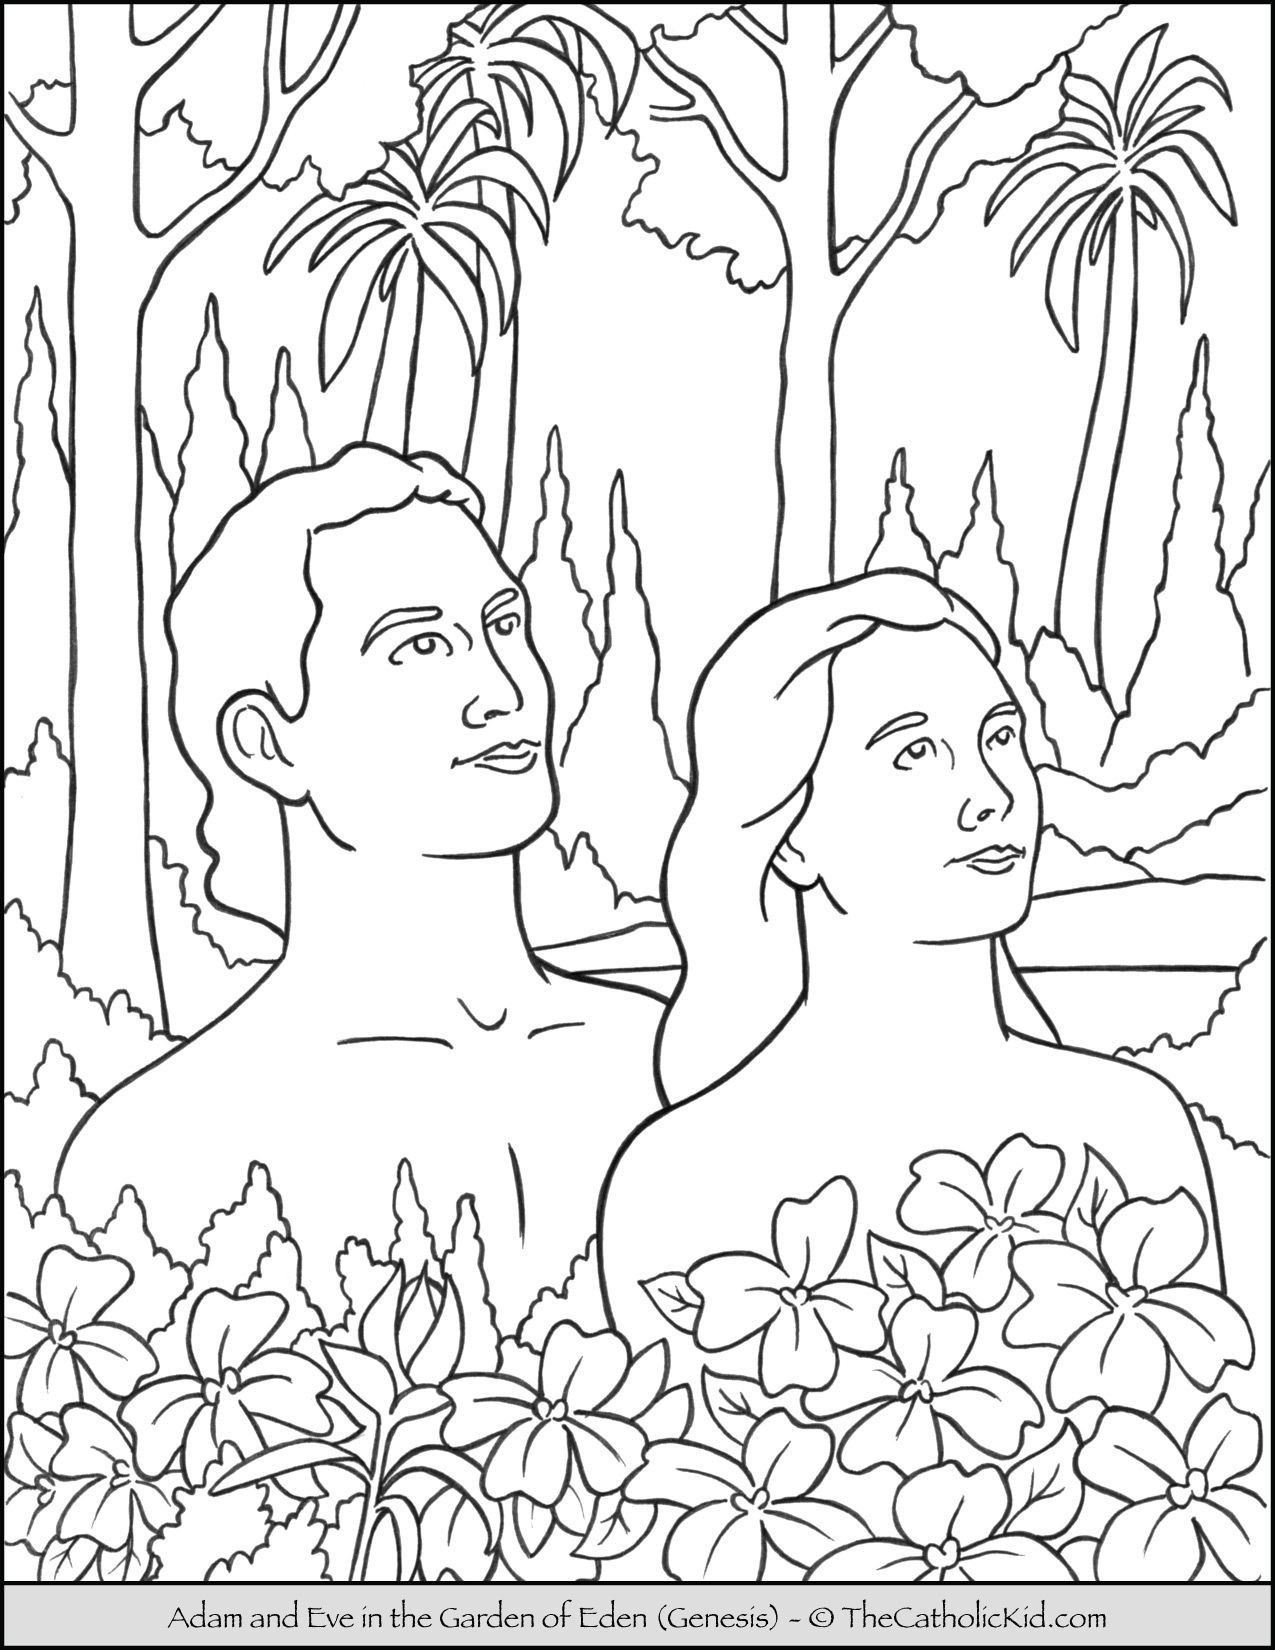 Bible Coloring Page Adam And Eve In The Garden Of Eden Thecatholickid Com Bible Coloring Pages Bible Coloring Printable Christmas Coloring Pages